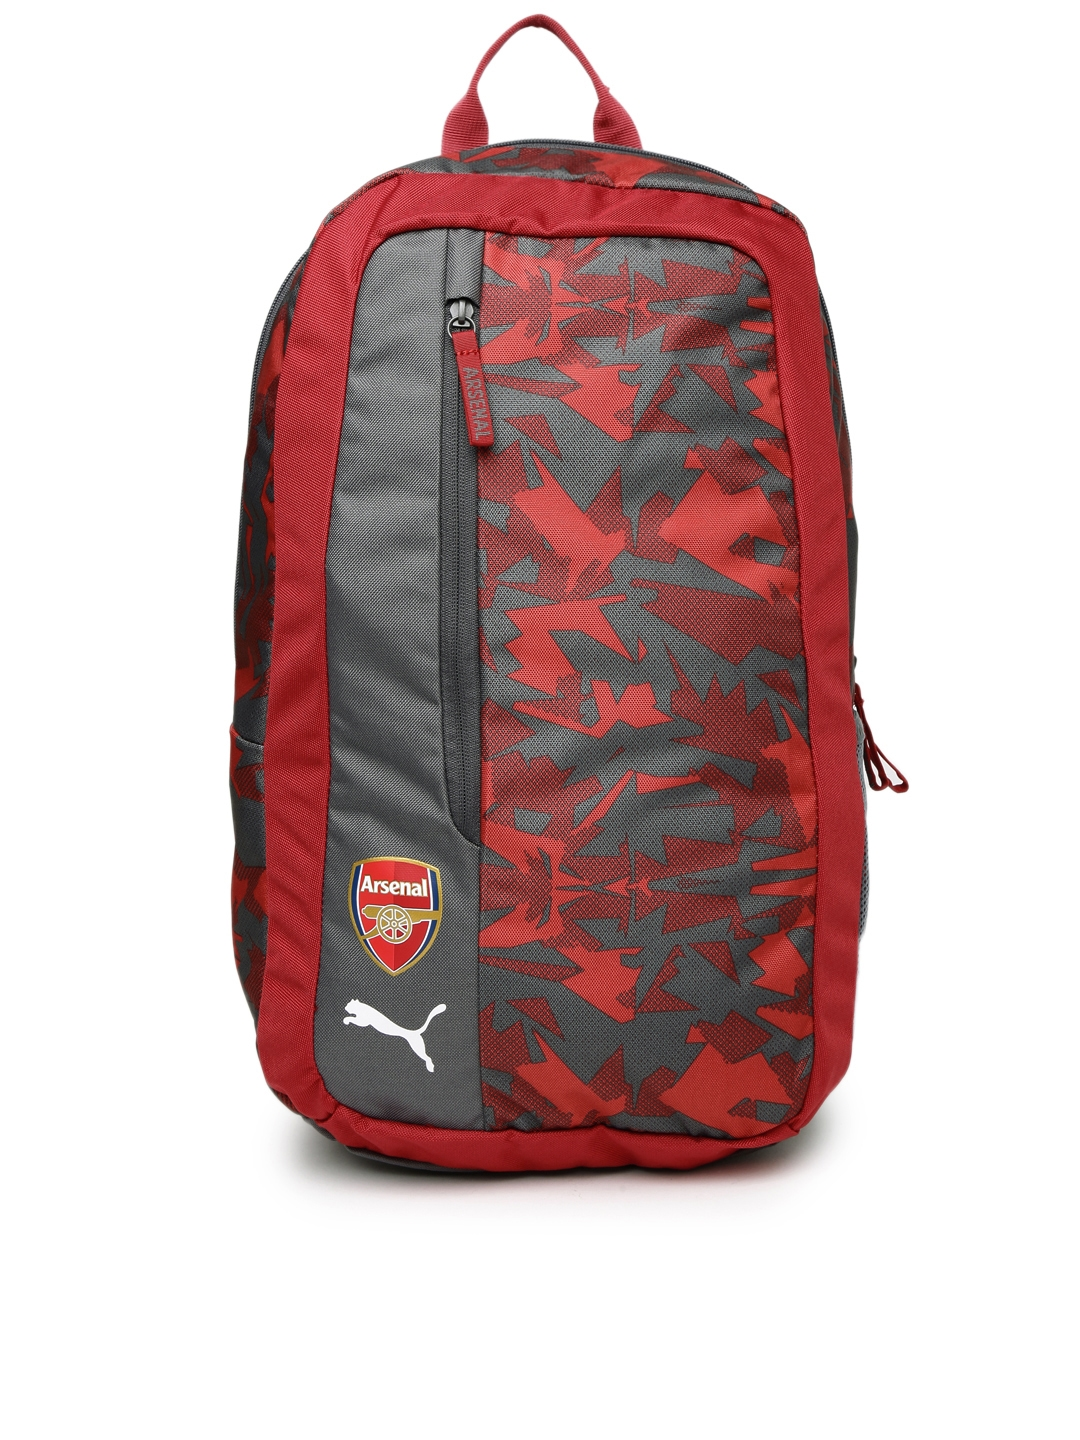 5cc86a7fbd6f Buy Puma Unisex Red   Grey Printed Arsenal Camo Fanwear Backpack - Backpacks  for Unisex 2030594